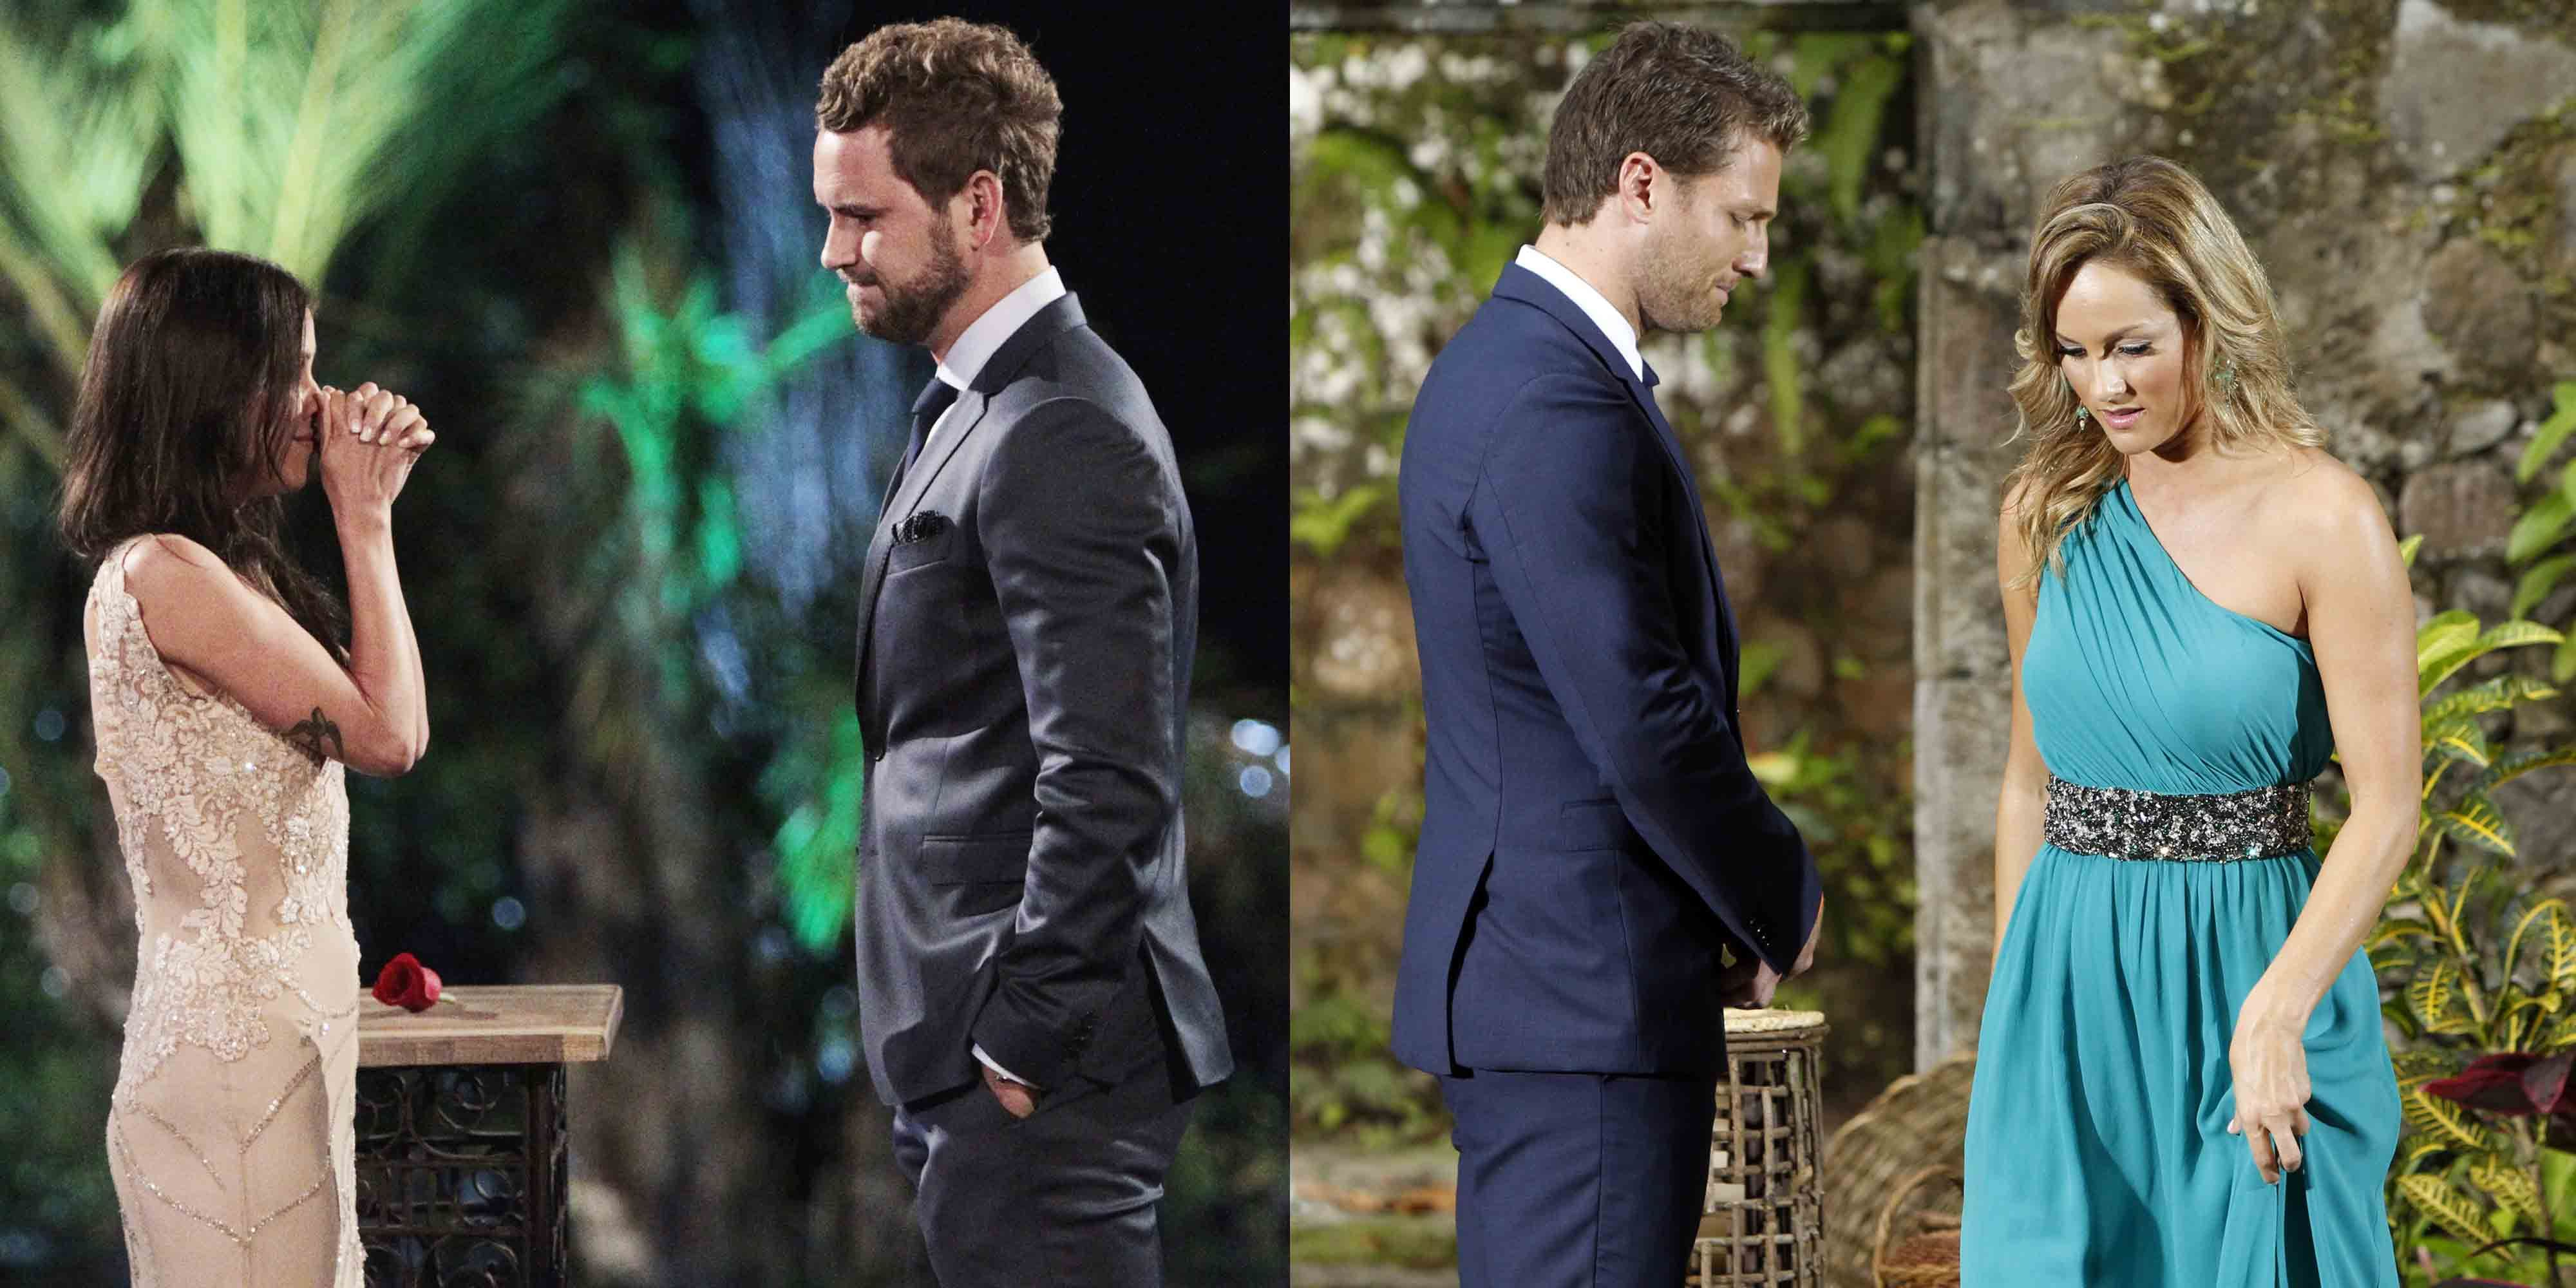 20 'Bachelor' Breakups That Were the Most Dramatic of All Time